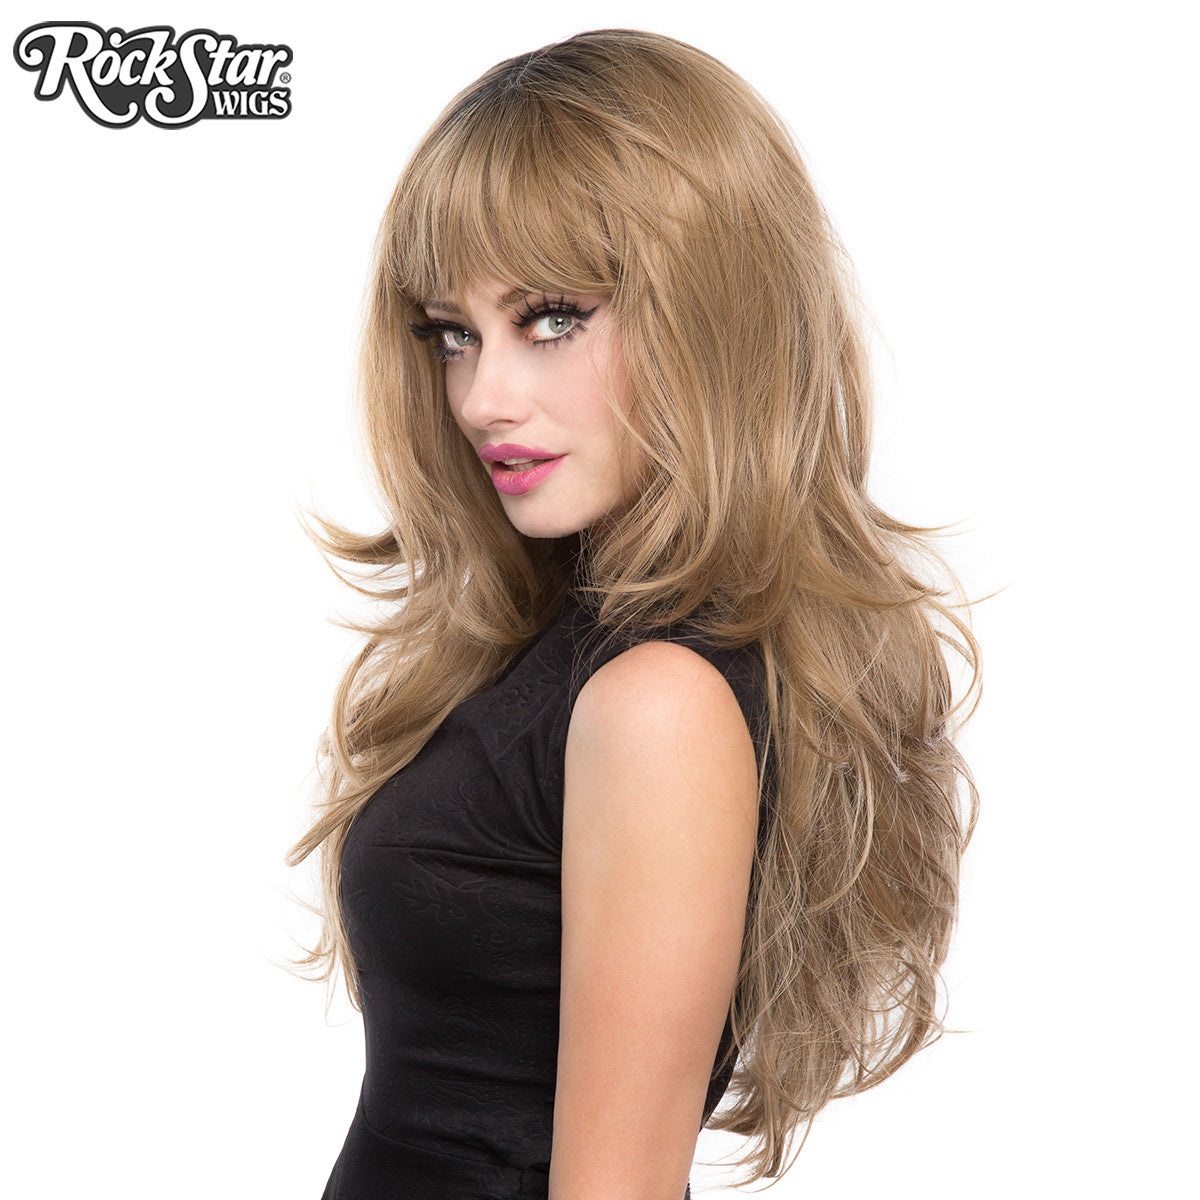 RockStar Wigs® <br> Uptown Girl™ Collection - Ladies Who Tea -00230